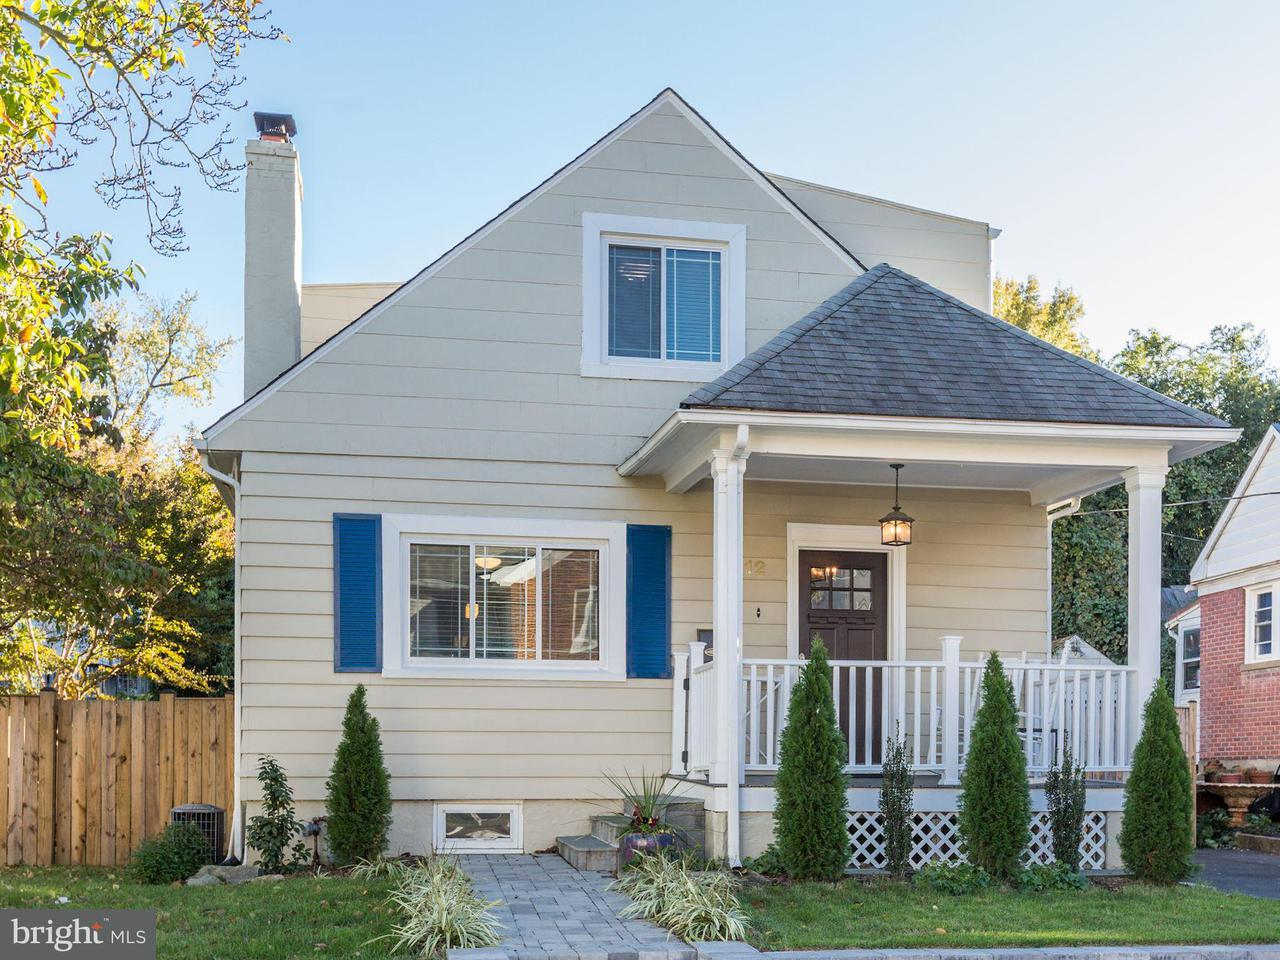 Single Family Home for Sale at 1112 19TH ST S 1112 19TH ST S Arlington, Virginia 22202 United States